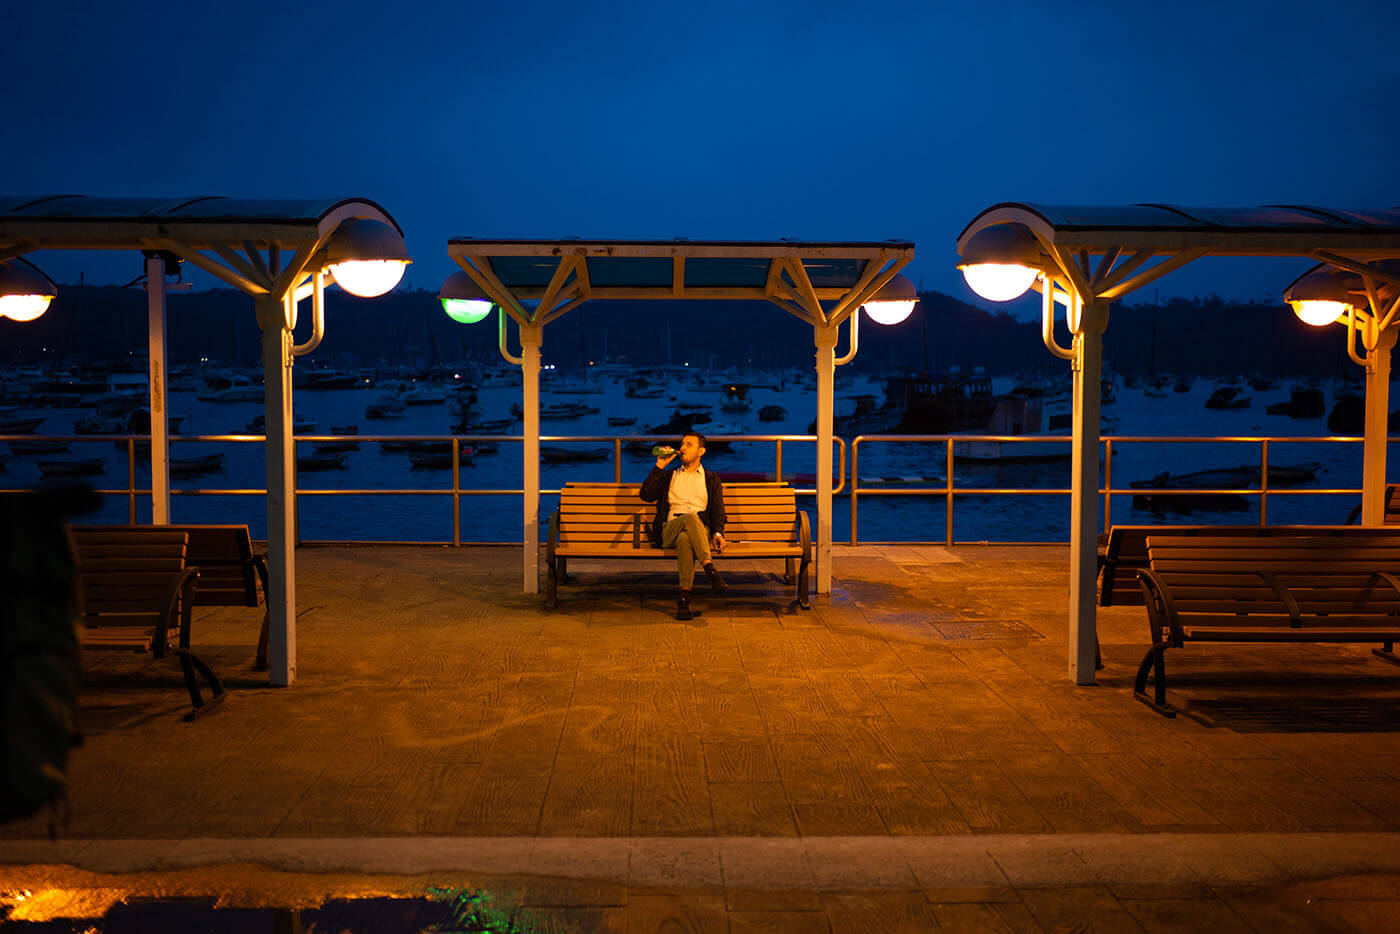 Lens-review-zeiss-distagon-35mm-f1.4-35-1.4-zm-m-mount-leica-wide-angle-street-character-optics-optical-performance-m9p-night-drink-chair